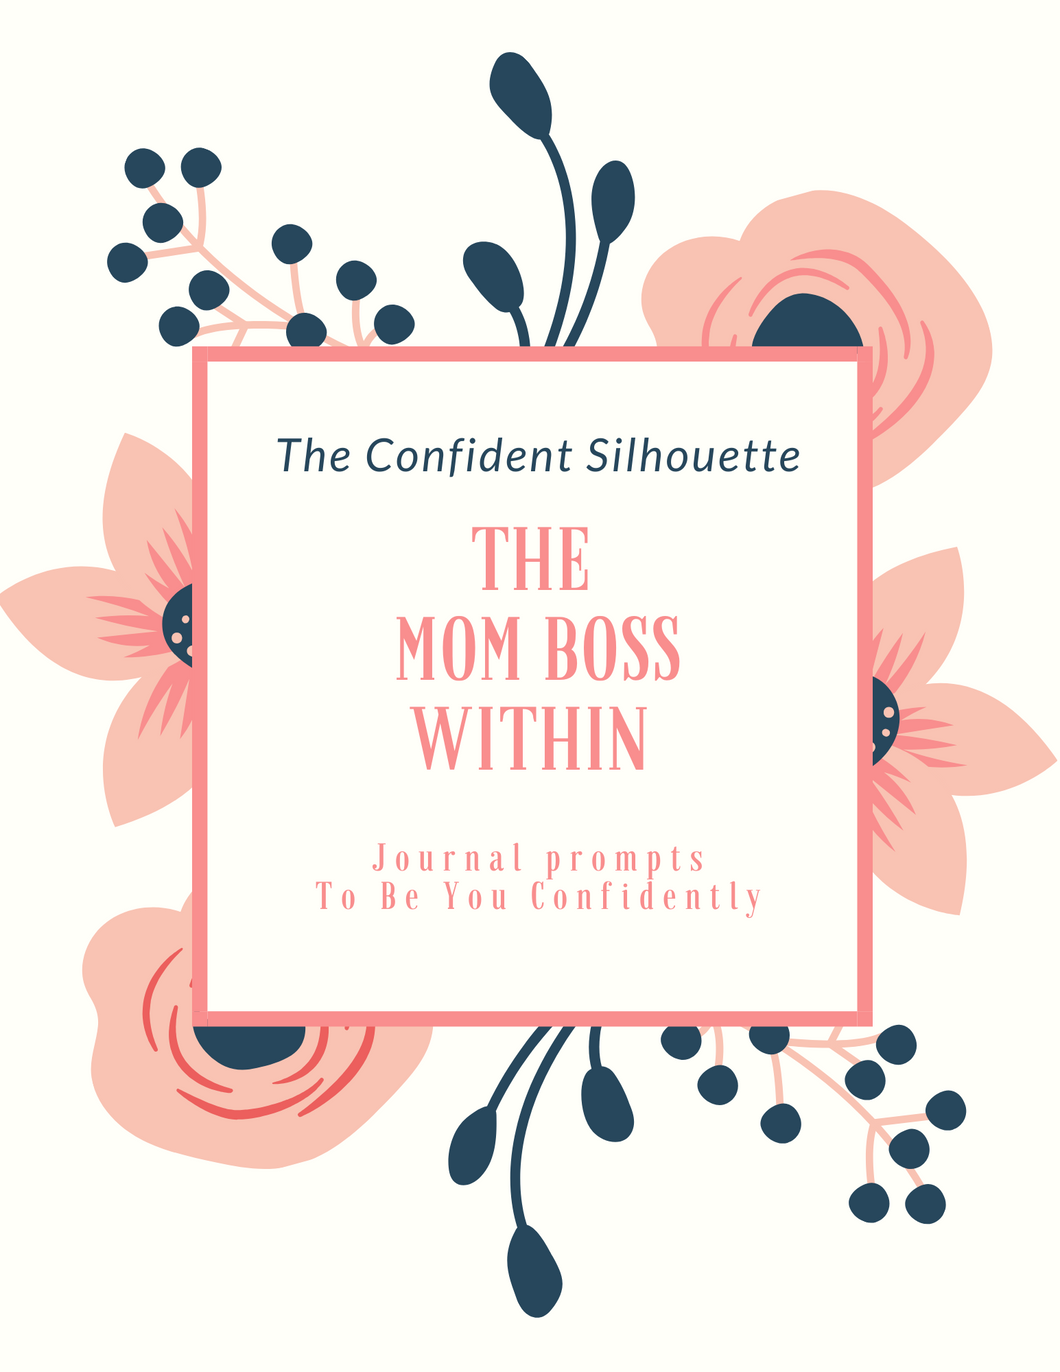 The Mom Boss Within Journal - The Confident Silhouette Co